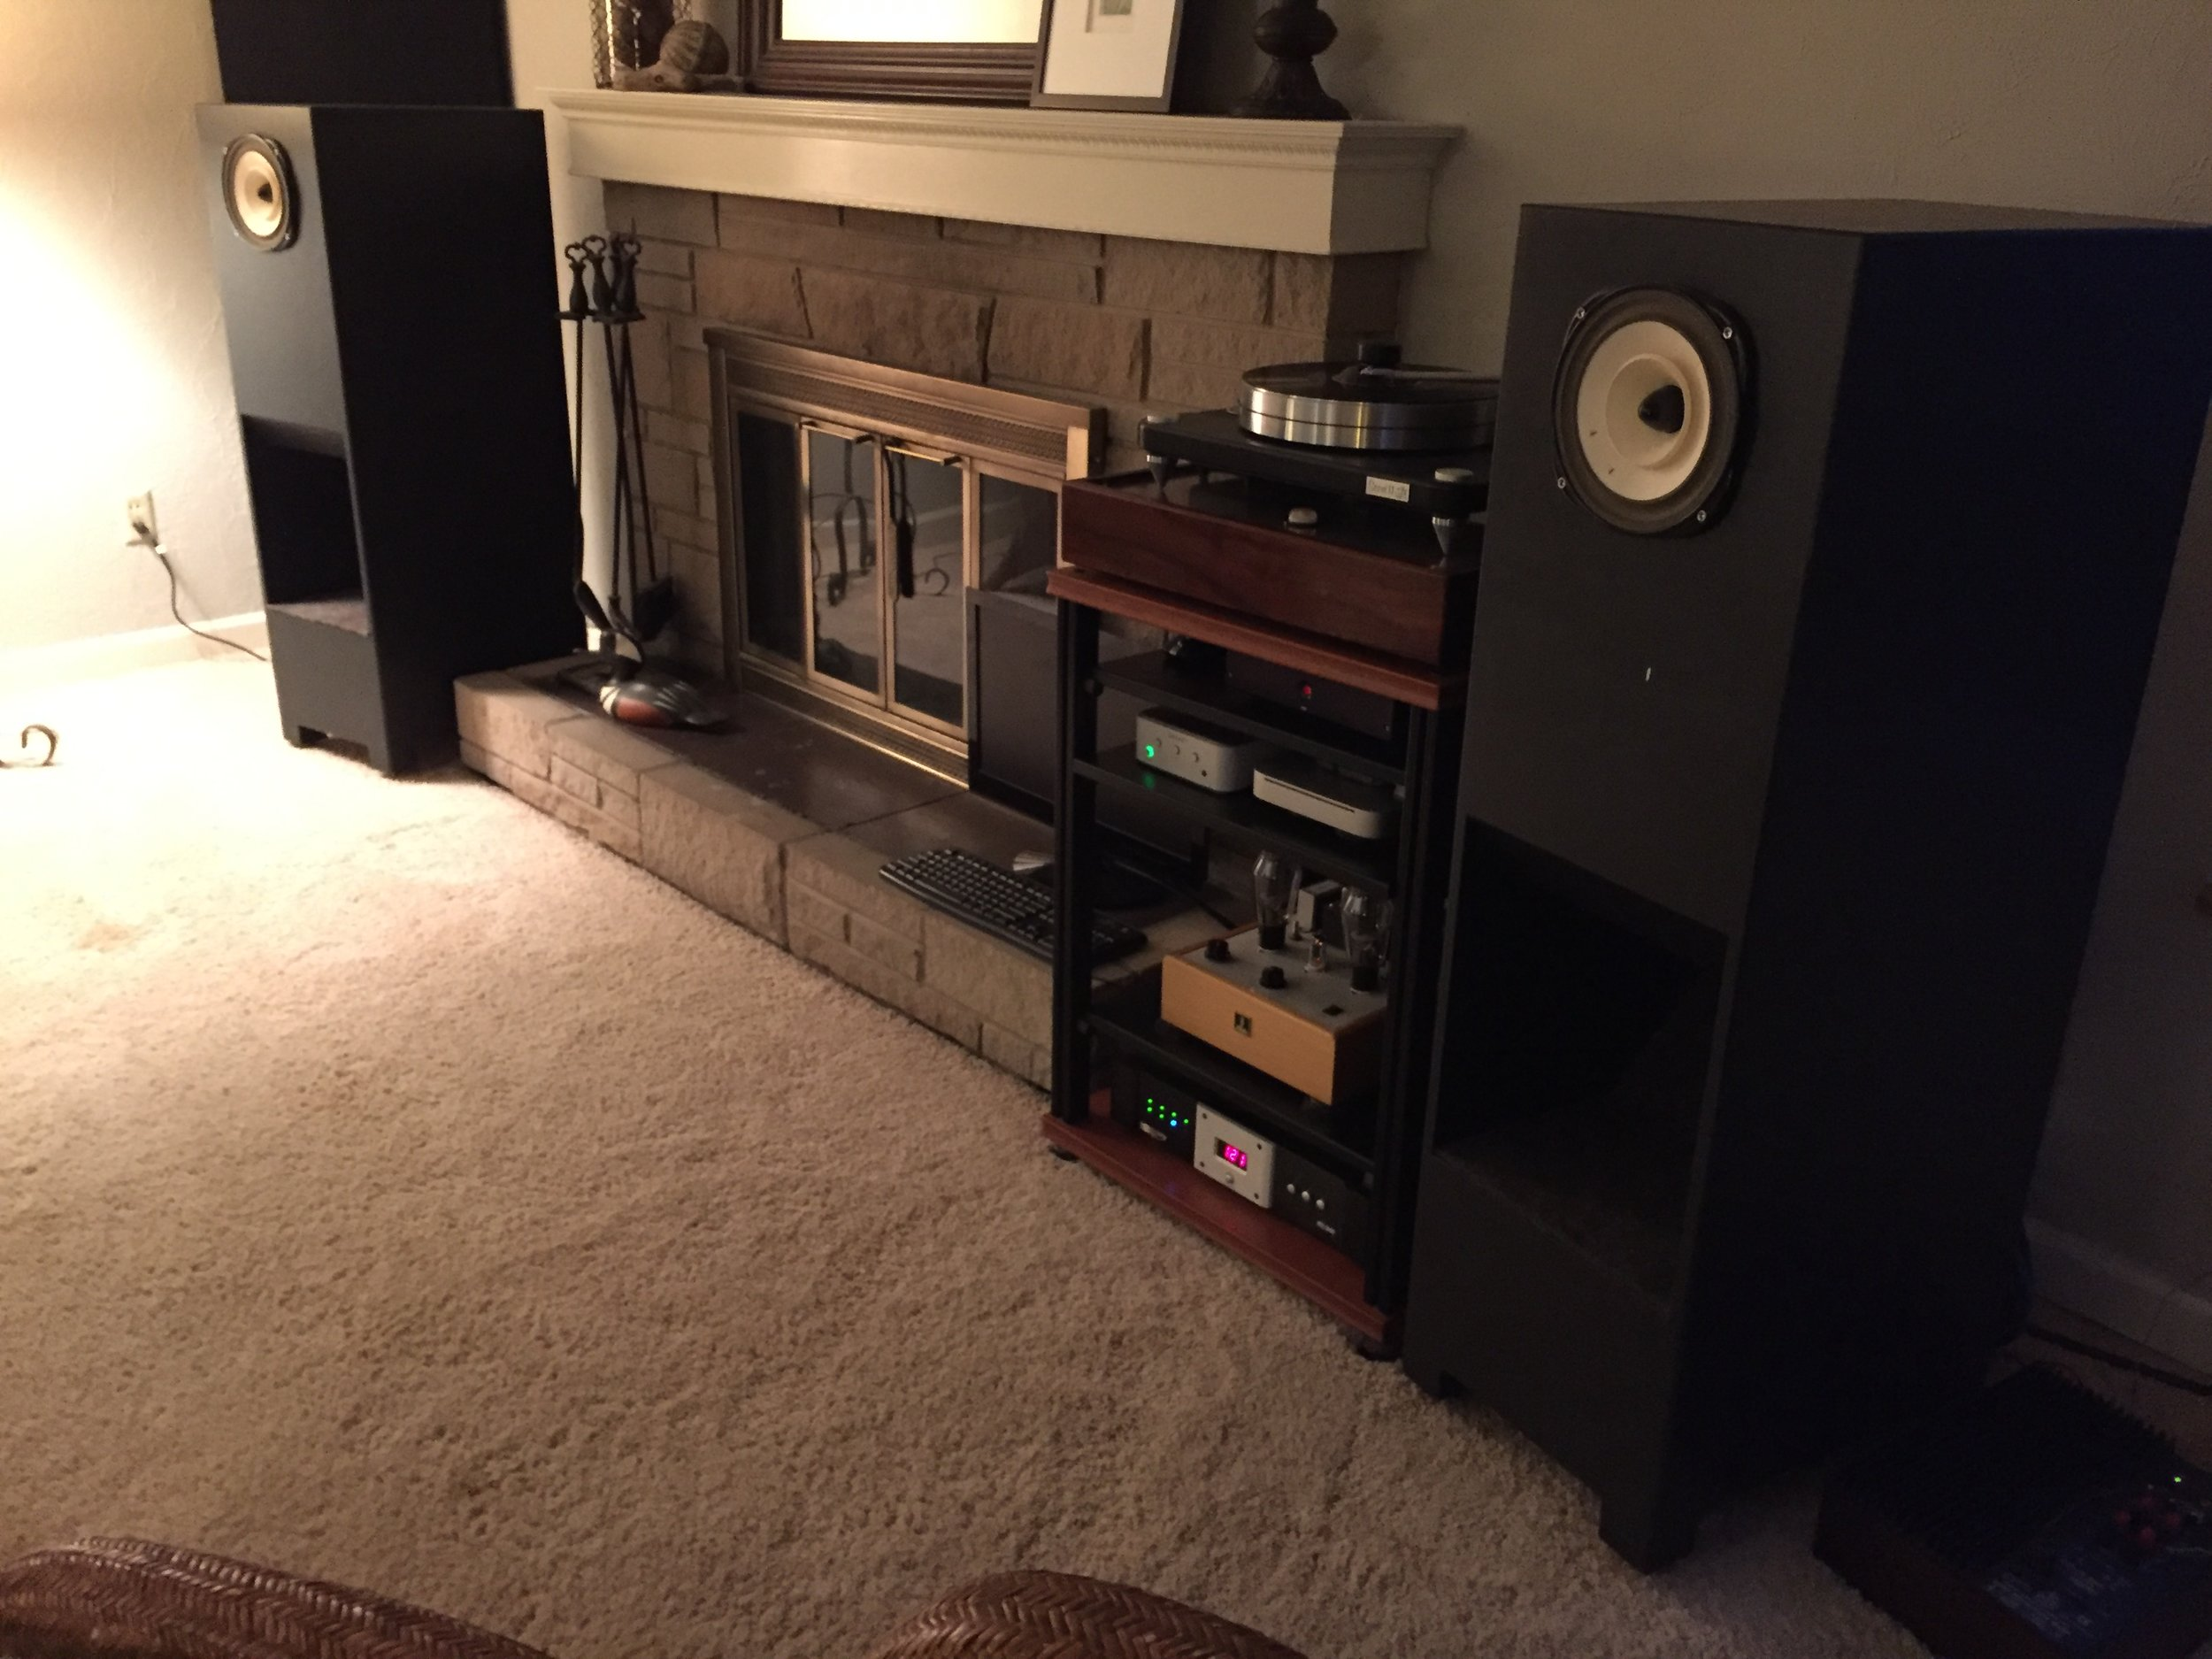 Toby P System:  Lowther DX-4 drivers in custom Medallion horn cabinets with Rythmik 12 inch down firing subs, Bottlehead Stereomour (1st gen) JJ2A3-40 power tubes, A2900 driver tube, Jupiter HT caps. , Musical Surroundings Nova Phonomena phono stage, VPI Scout IIturntable, Dynavector 20X2L cartridge, DIY interconnects, Cardas crosslink speaker cables.